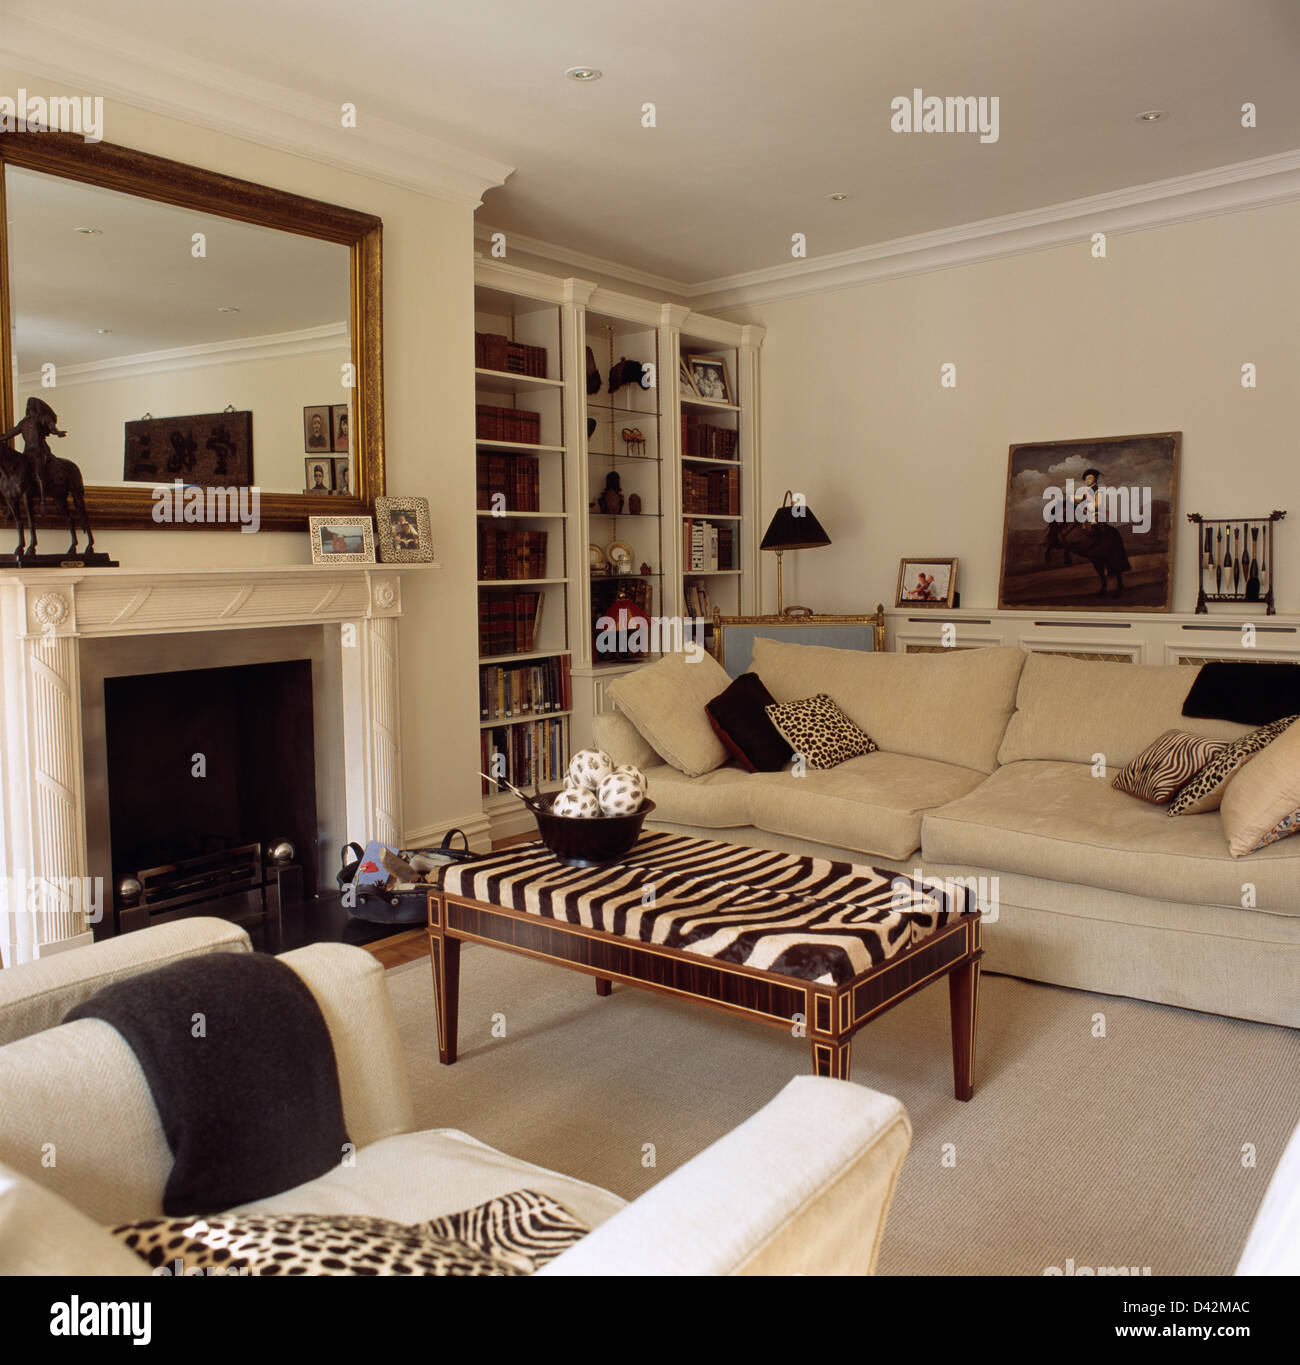 Living Room Stools Uk Zebra Print Stool And Cream Sofa In Elegant Living Room